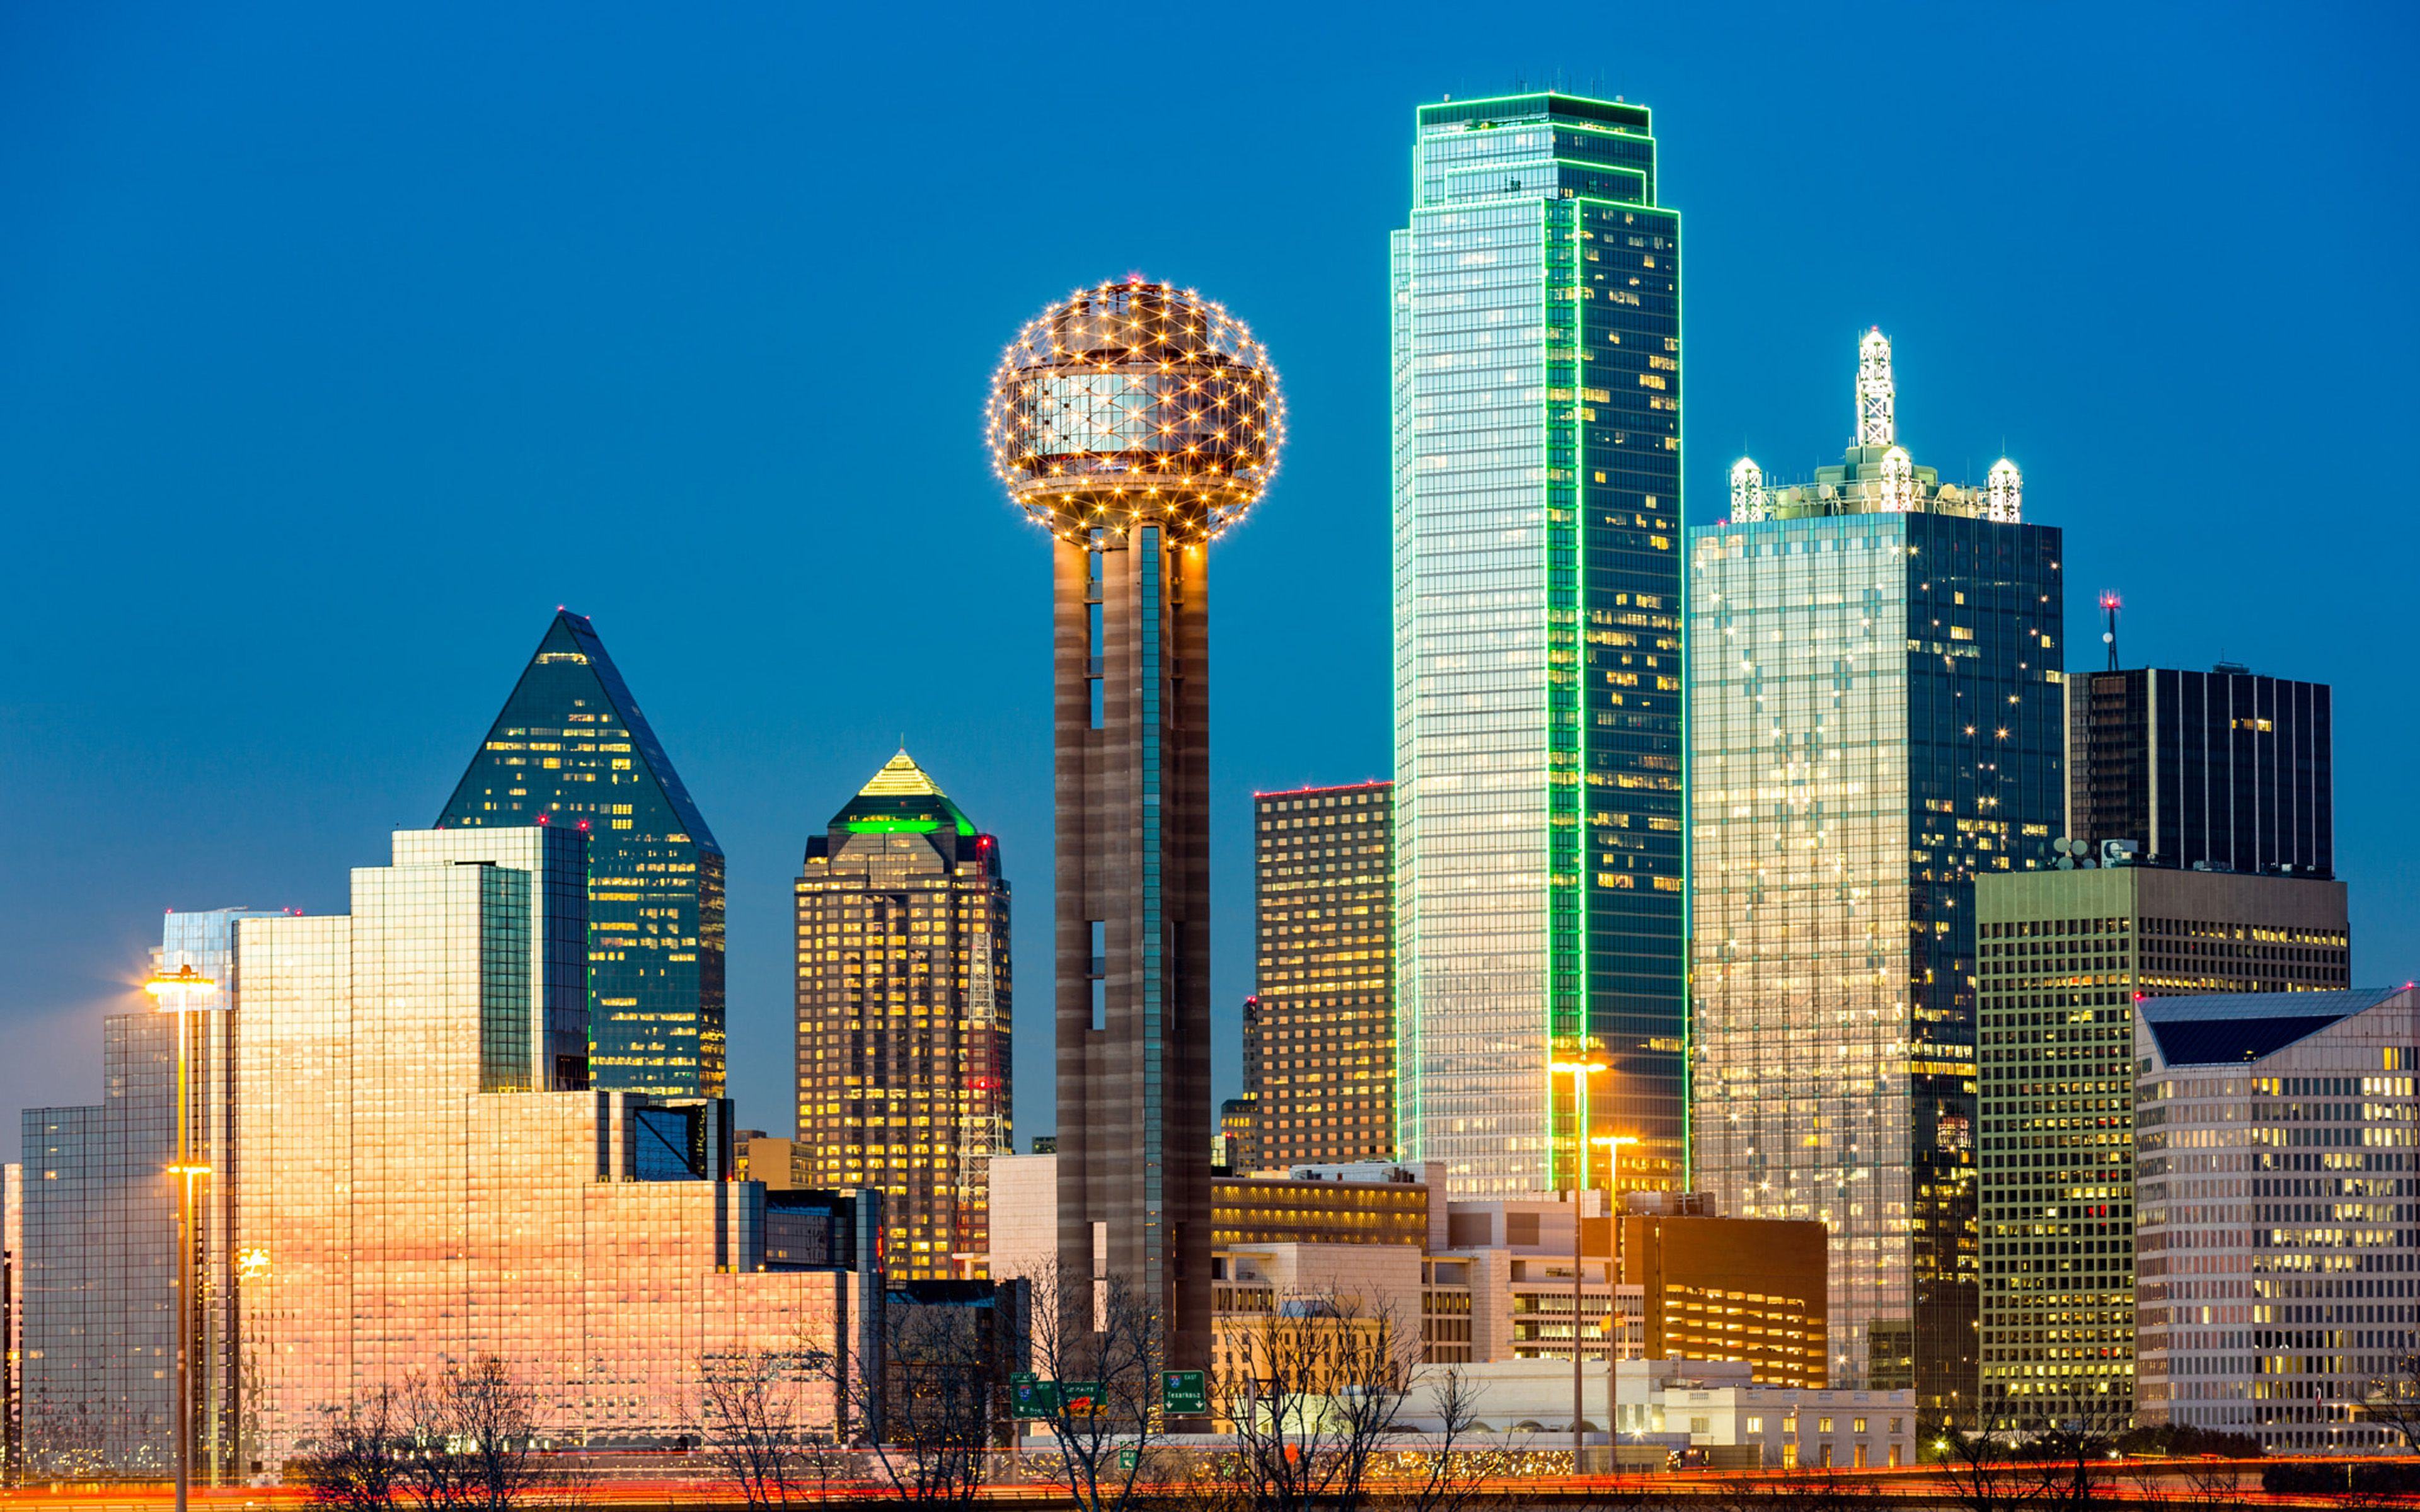 3840x2400 Dallas Reunion Tower Skyline At Night City In Texas United ...